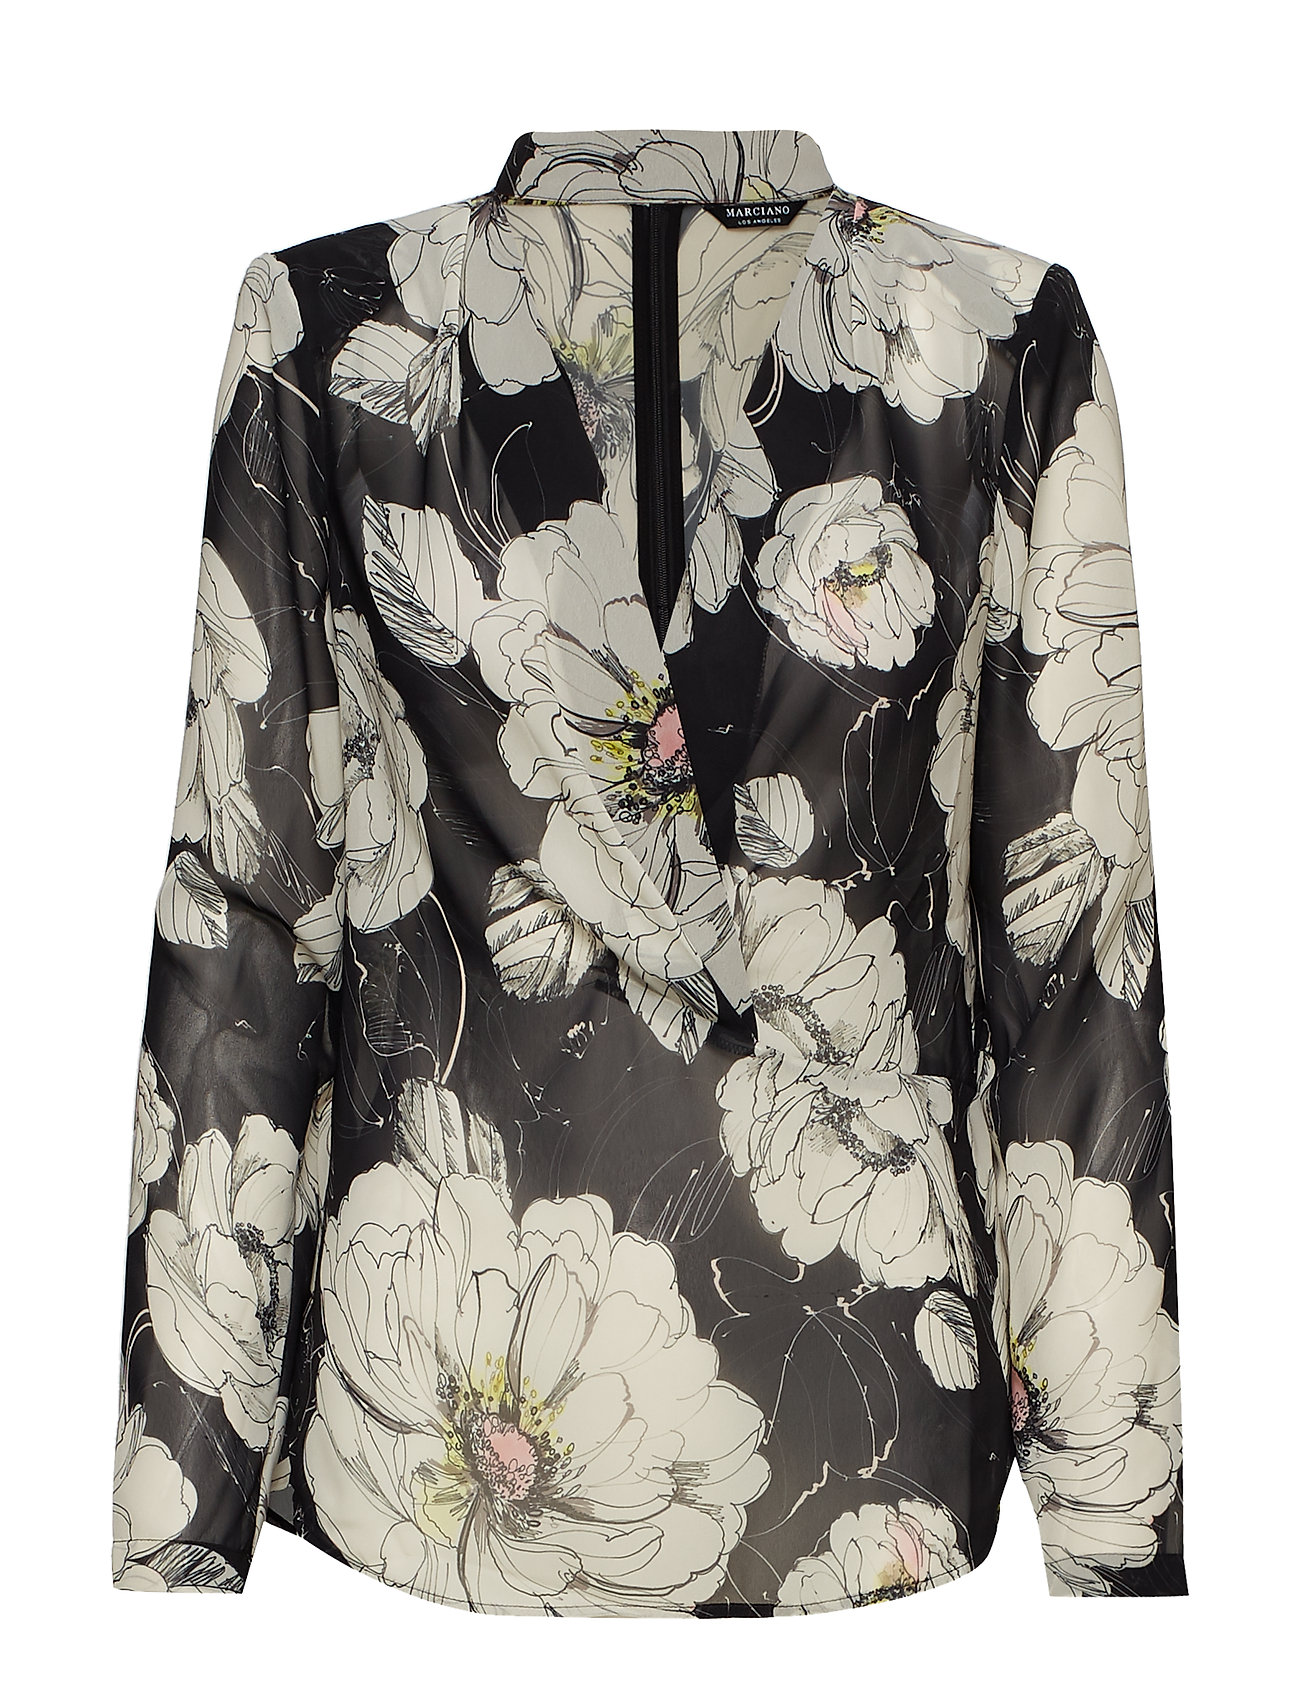 Marciano by GUESS FINE LINES FLORAL TOP